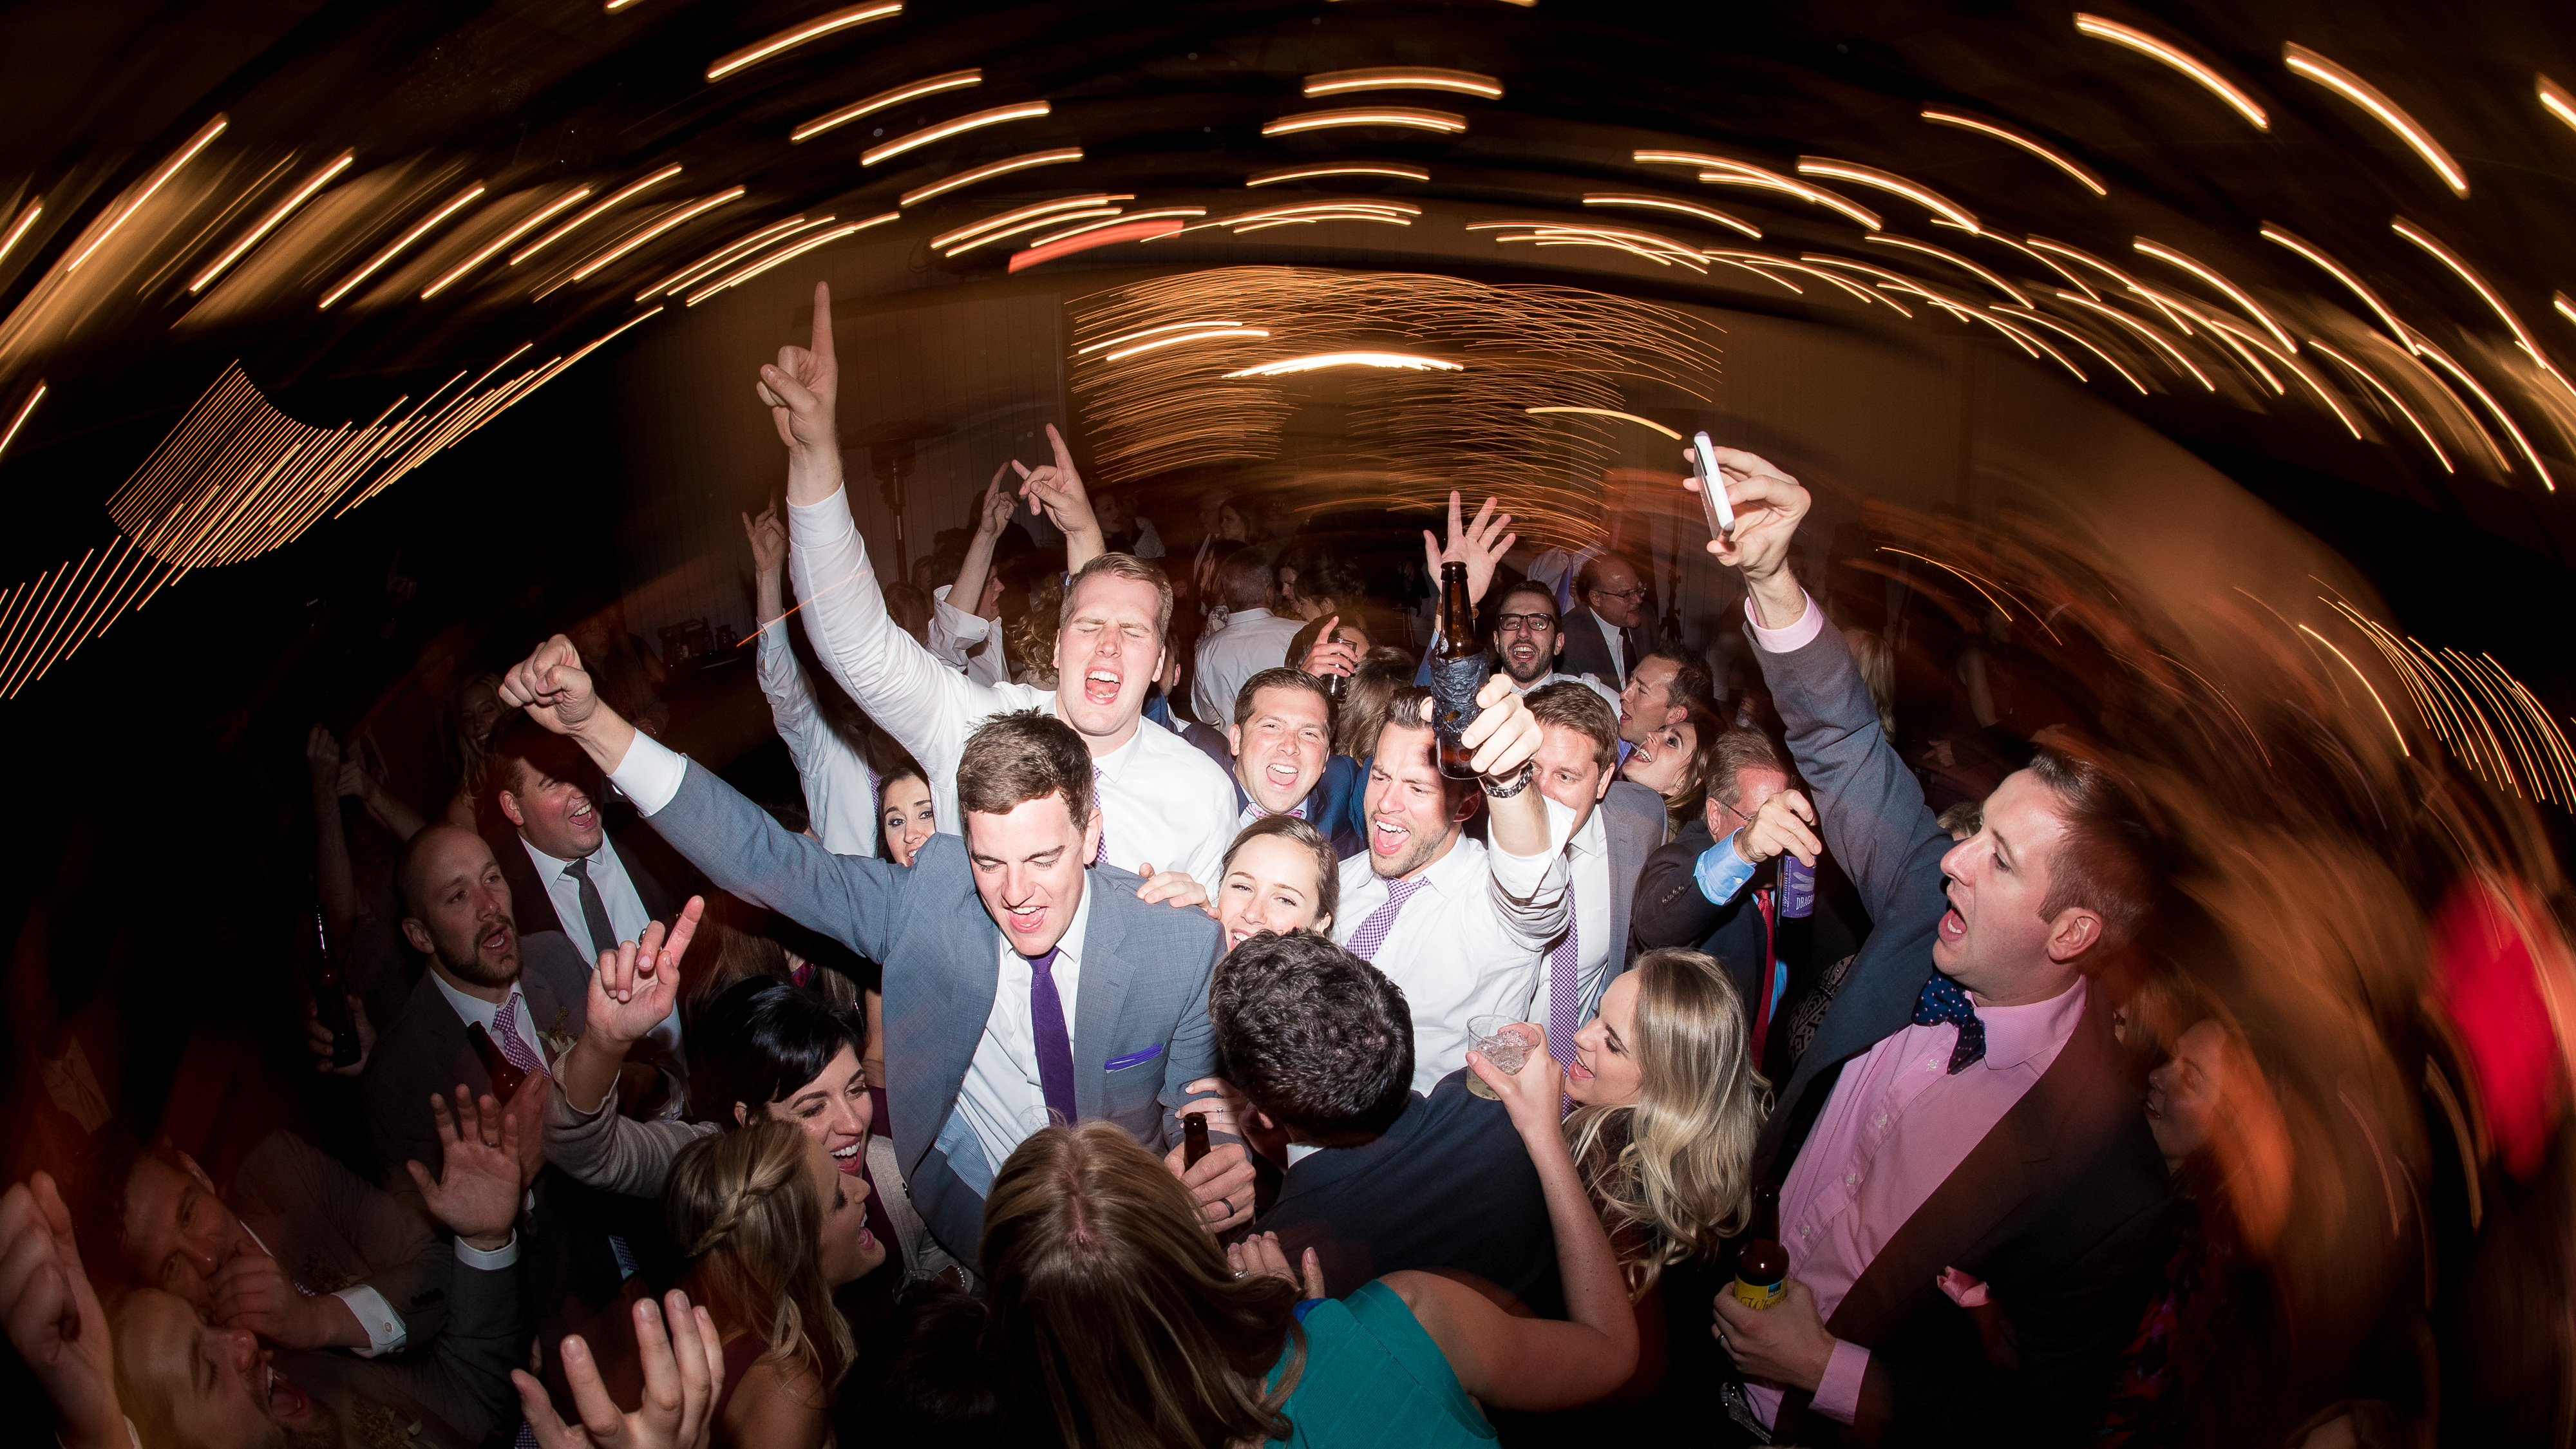 Great wedding party and dancing photos